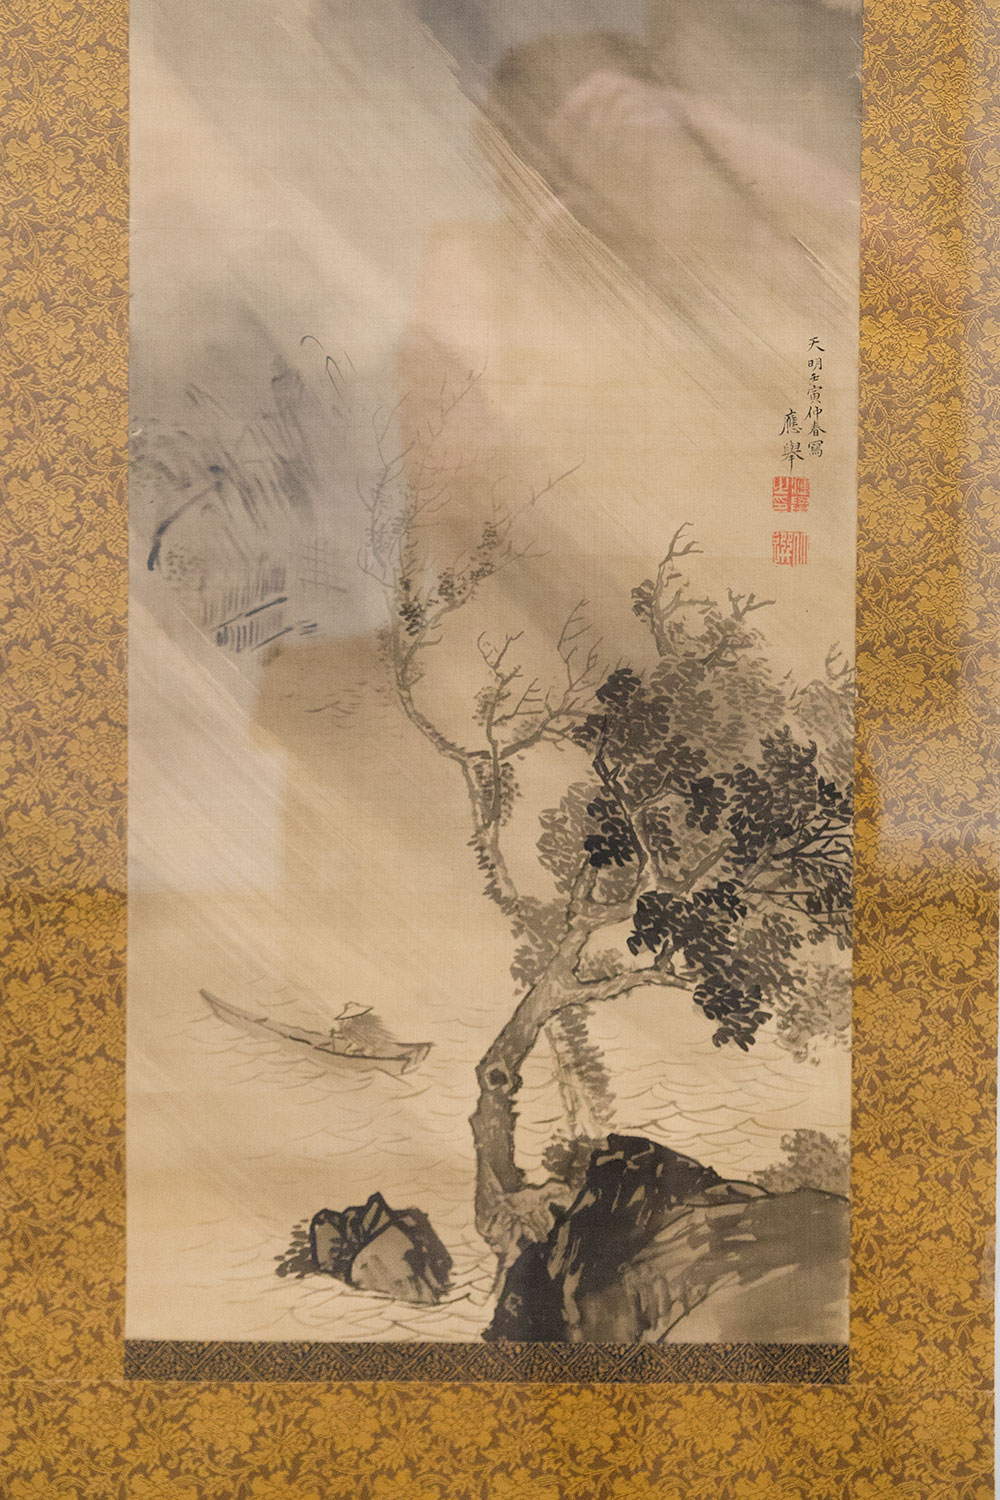 Detail of Maruyama Ōkyo, Landscape in a Rainstorm, 1782. Hanging scroll. Promised gift of Robert S. and Betsy G. Feinberg.